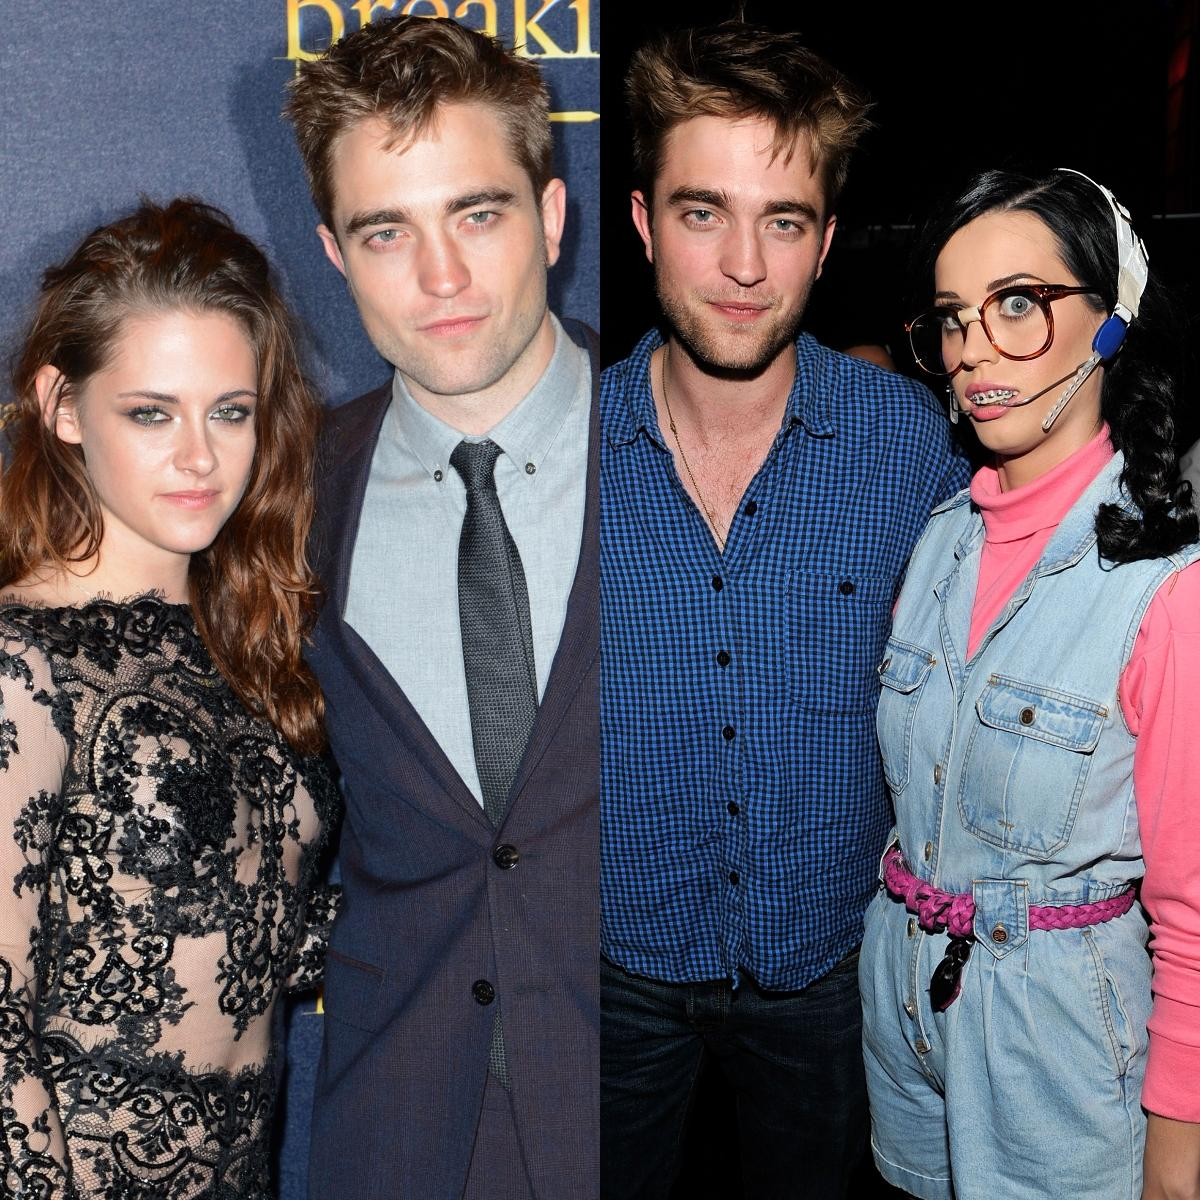 who is dating rob pattinson